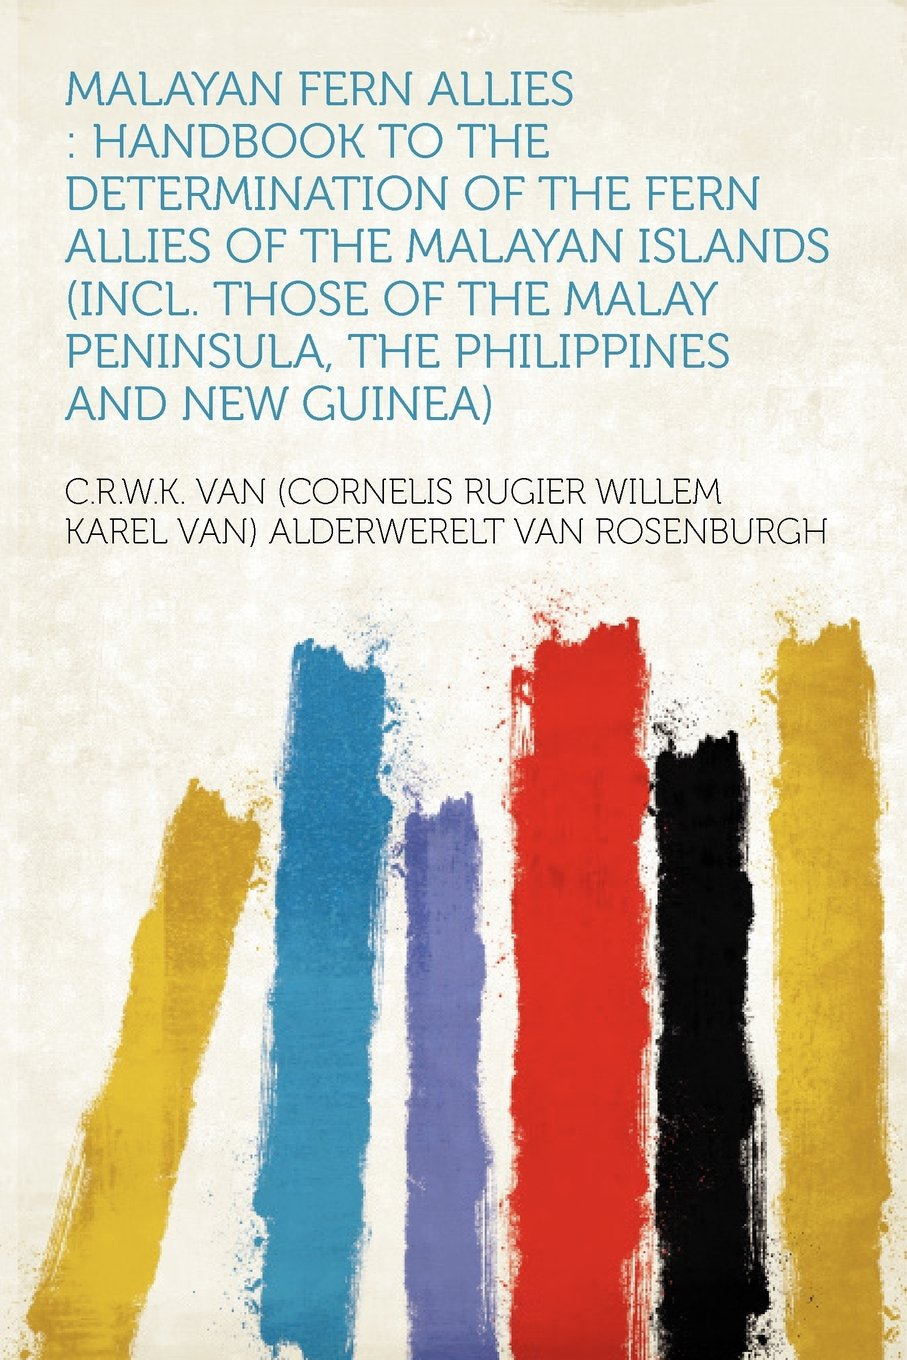 Malayan Fern Allies: Handbook to the Determination of the Fern Allies of the Malayan Islands (incl. Those of the Malay Peninsula, the Philippines and New Guinea)